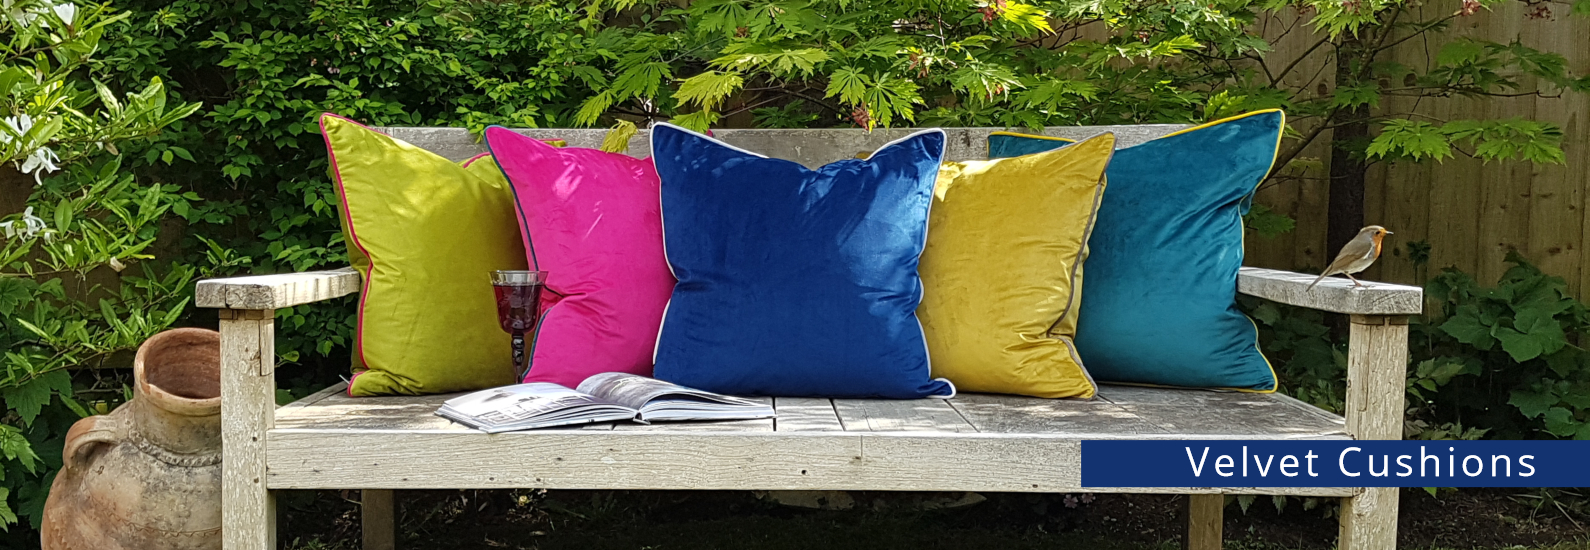 Velvet Cushions Feather Filled Cushions